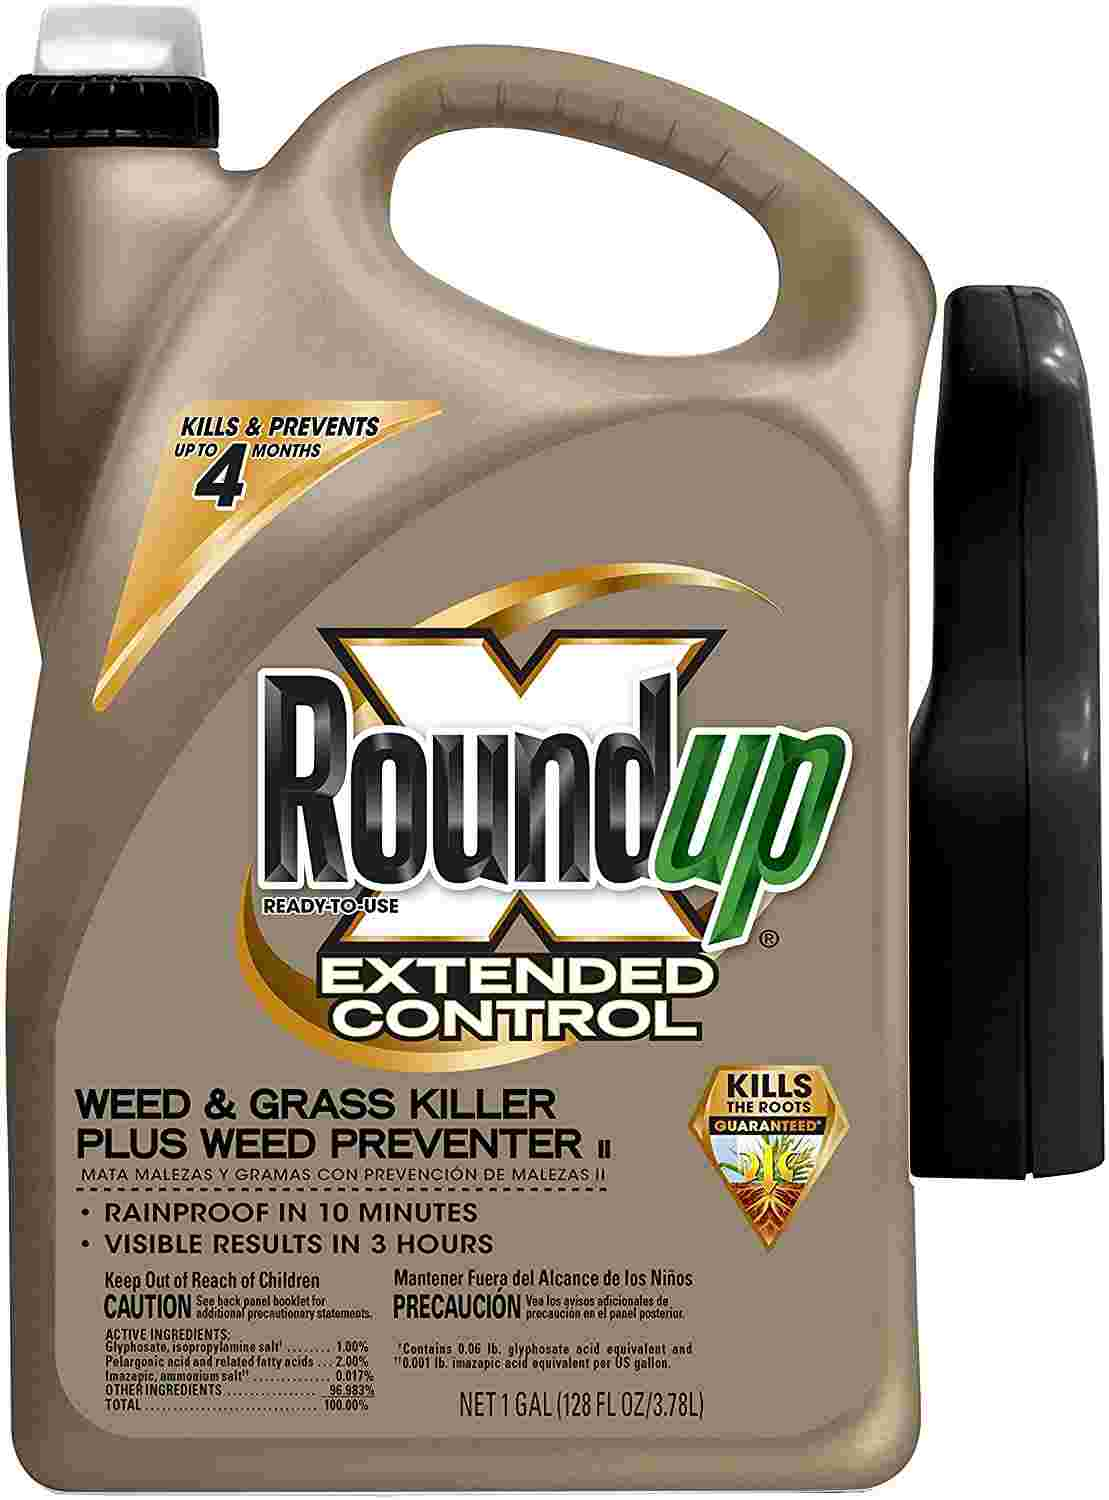 Roundup 5004010 Ready-To-Use Extended Control Weed & Grass Killer Plus Weed Preventer